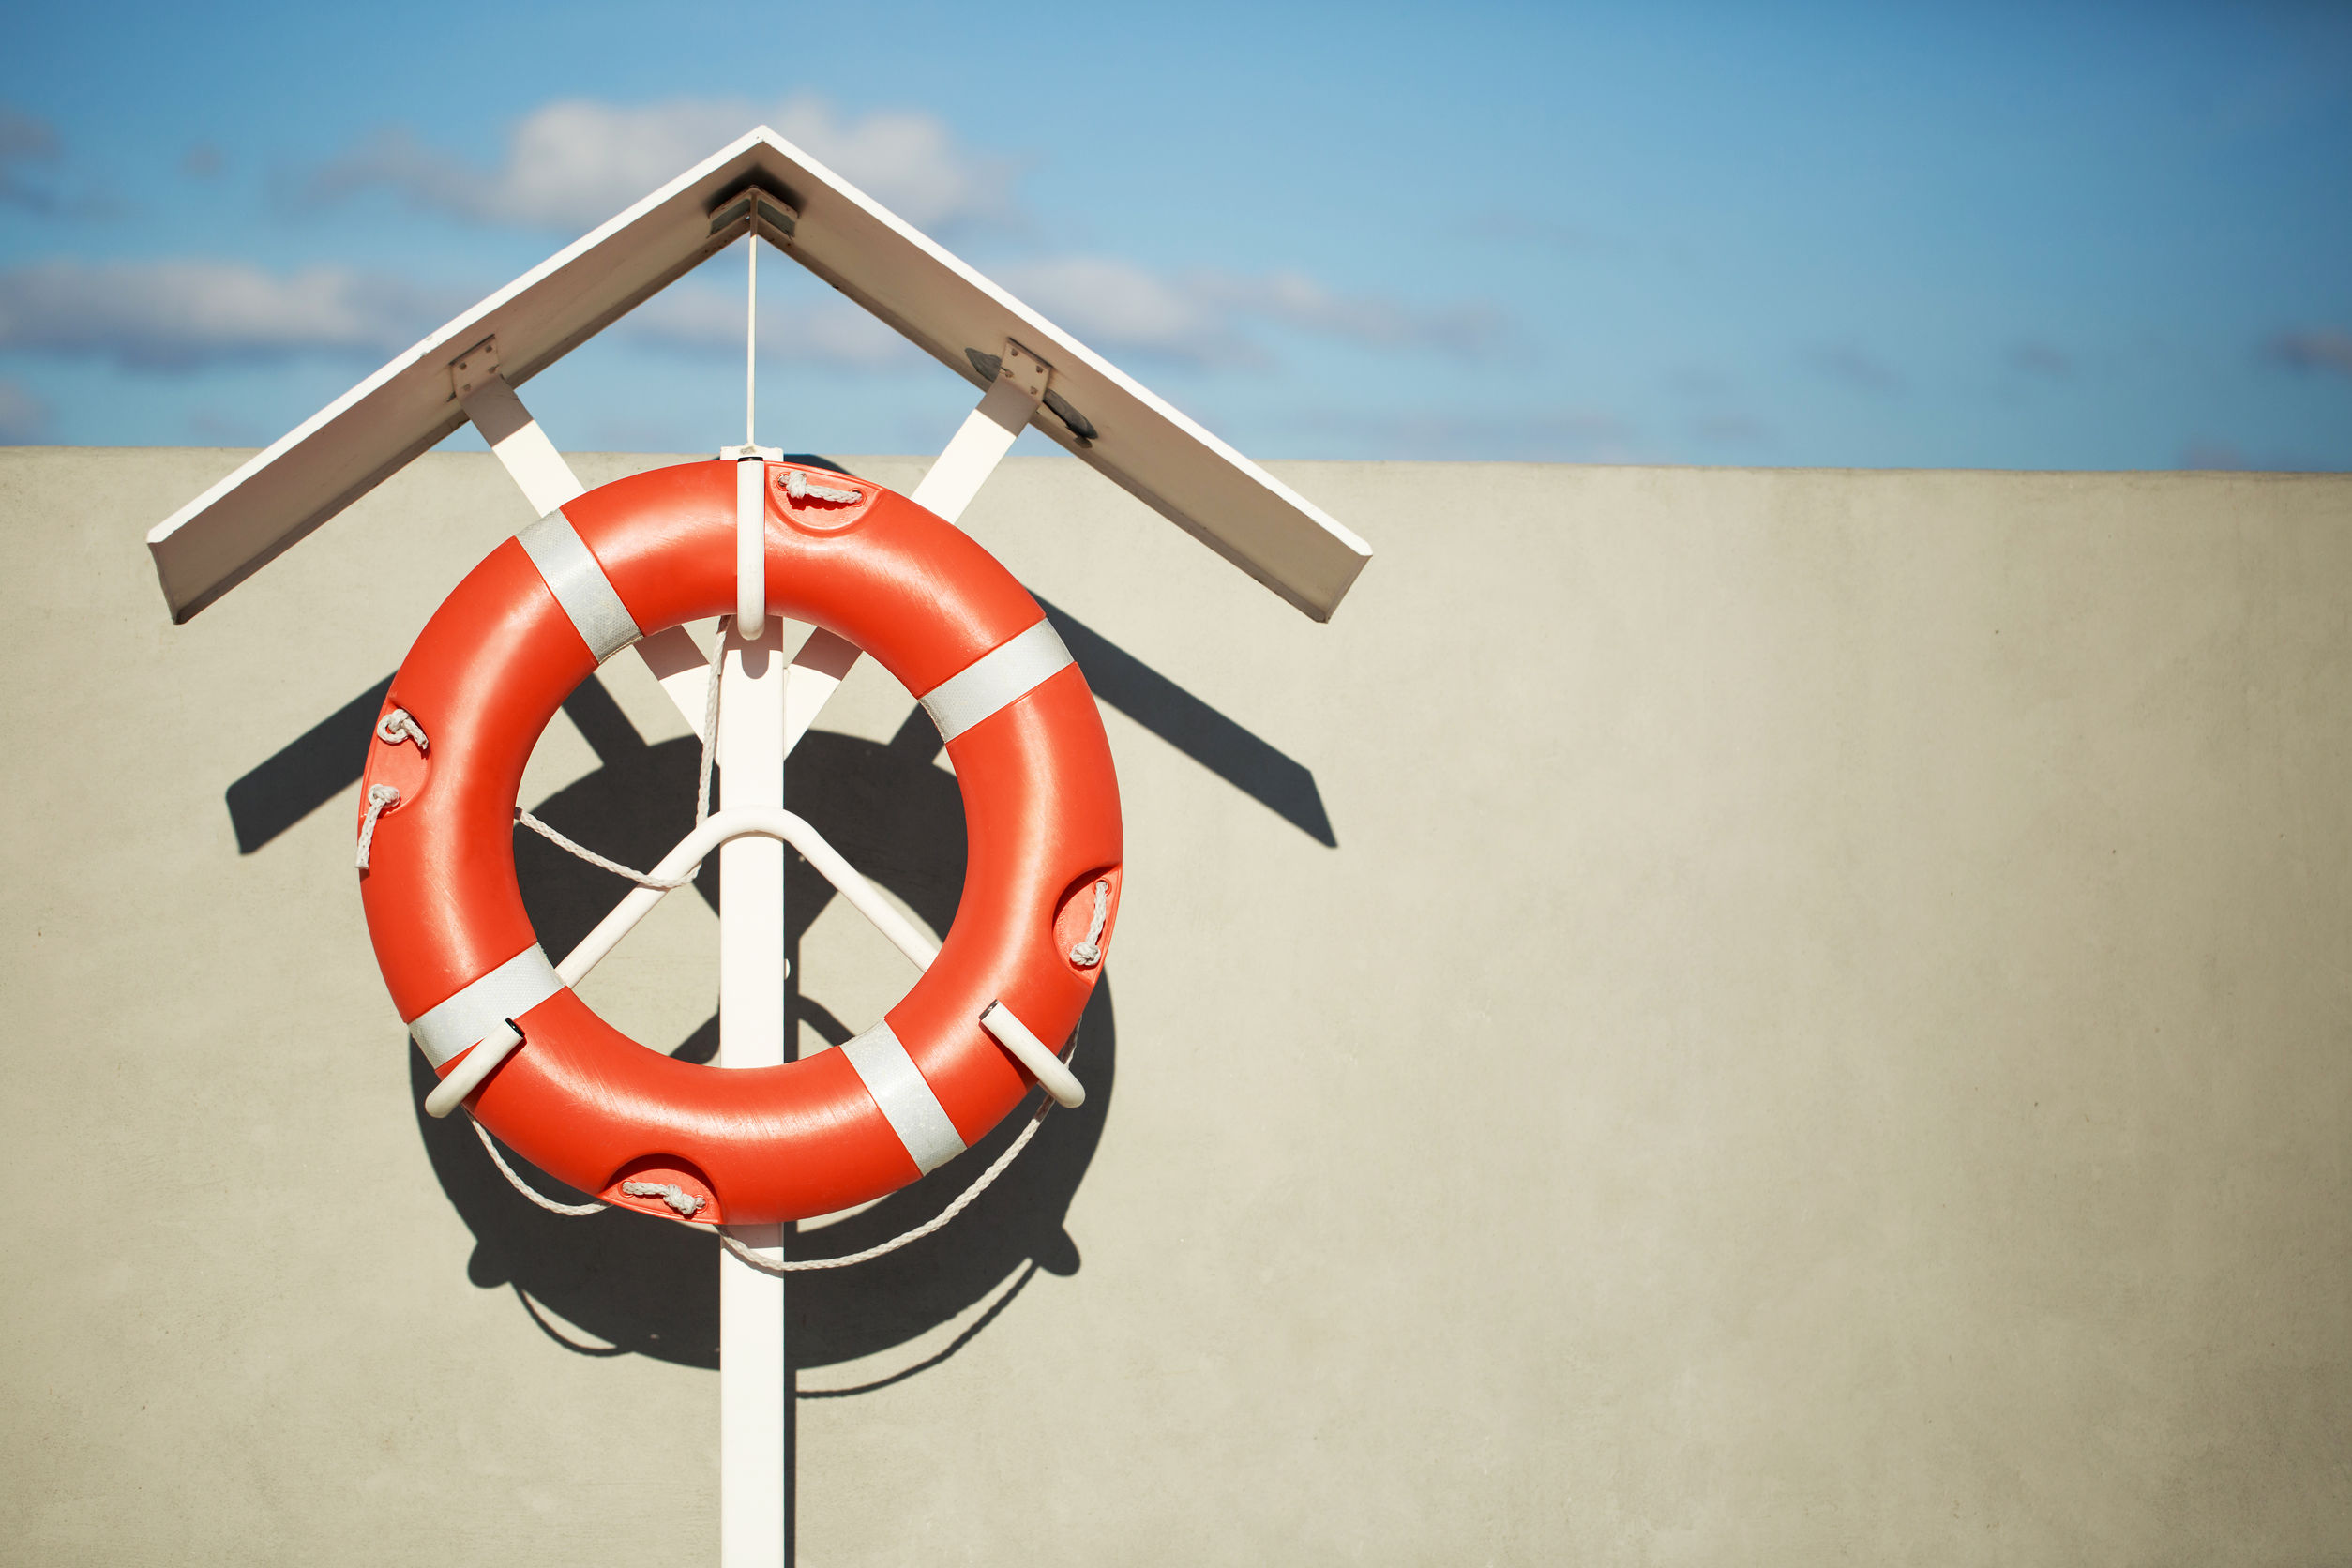 Lifebuoy on the pier with blue sky background - time management